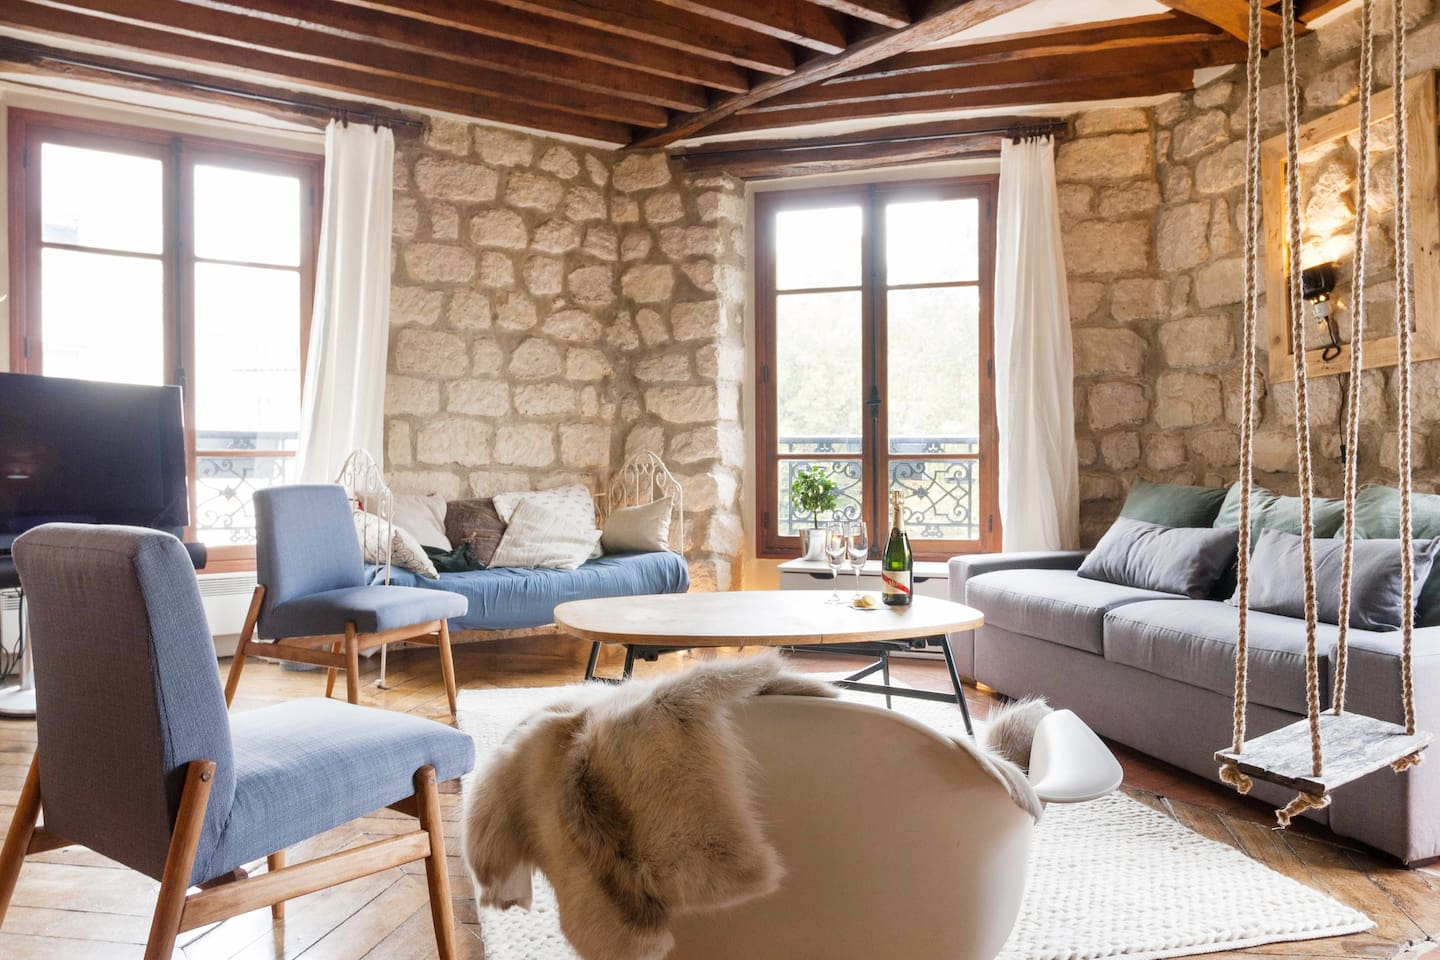 this apartment in the centre of Paris looks more like a castle with the stone walls and the open fireplace, Cal McTravels, www.calmctravels.com